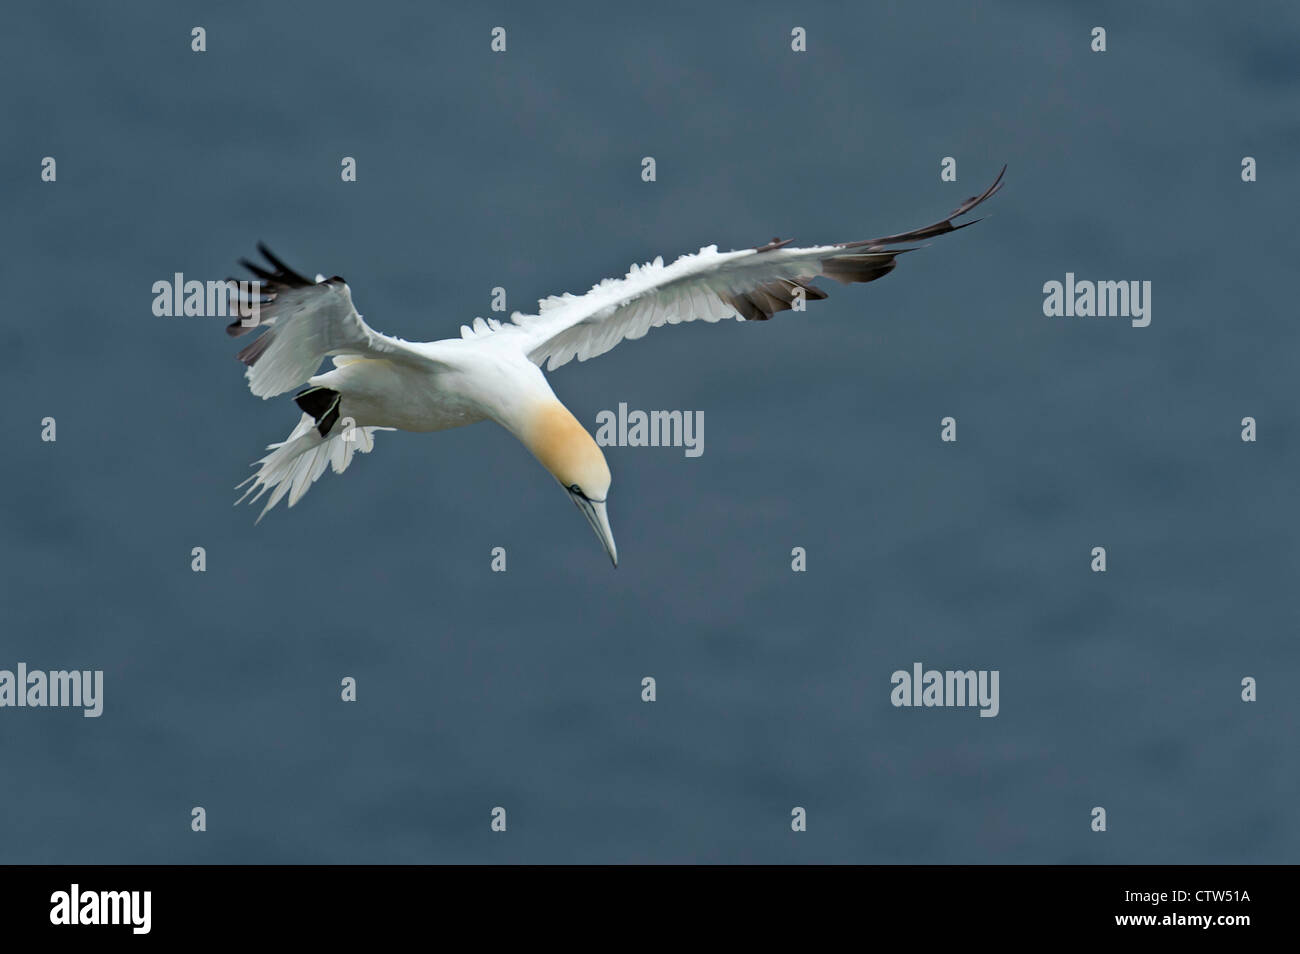 Northern gannet (Morus bassanus) summer adult in flight, preparing to land. Shetland Isles. June 2011. - Stock Image